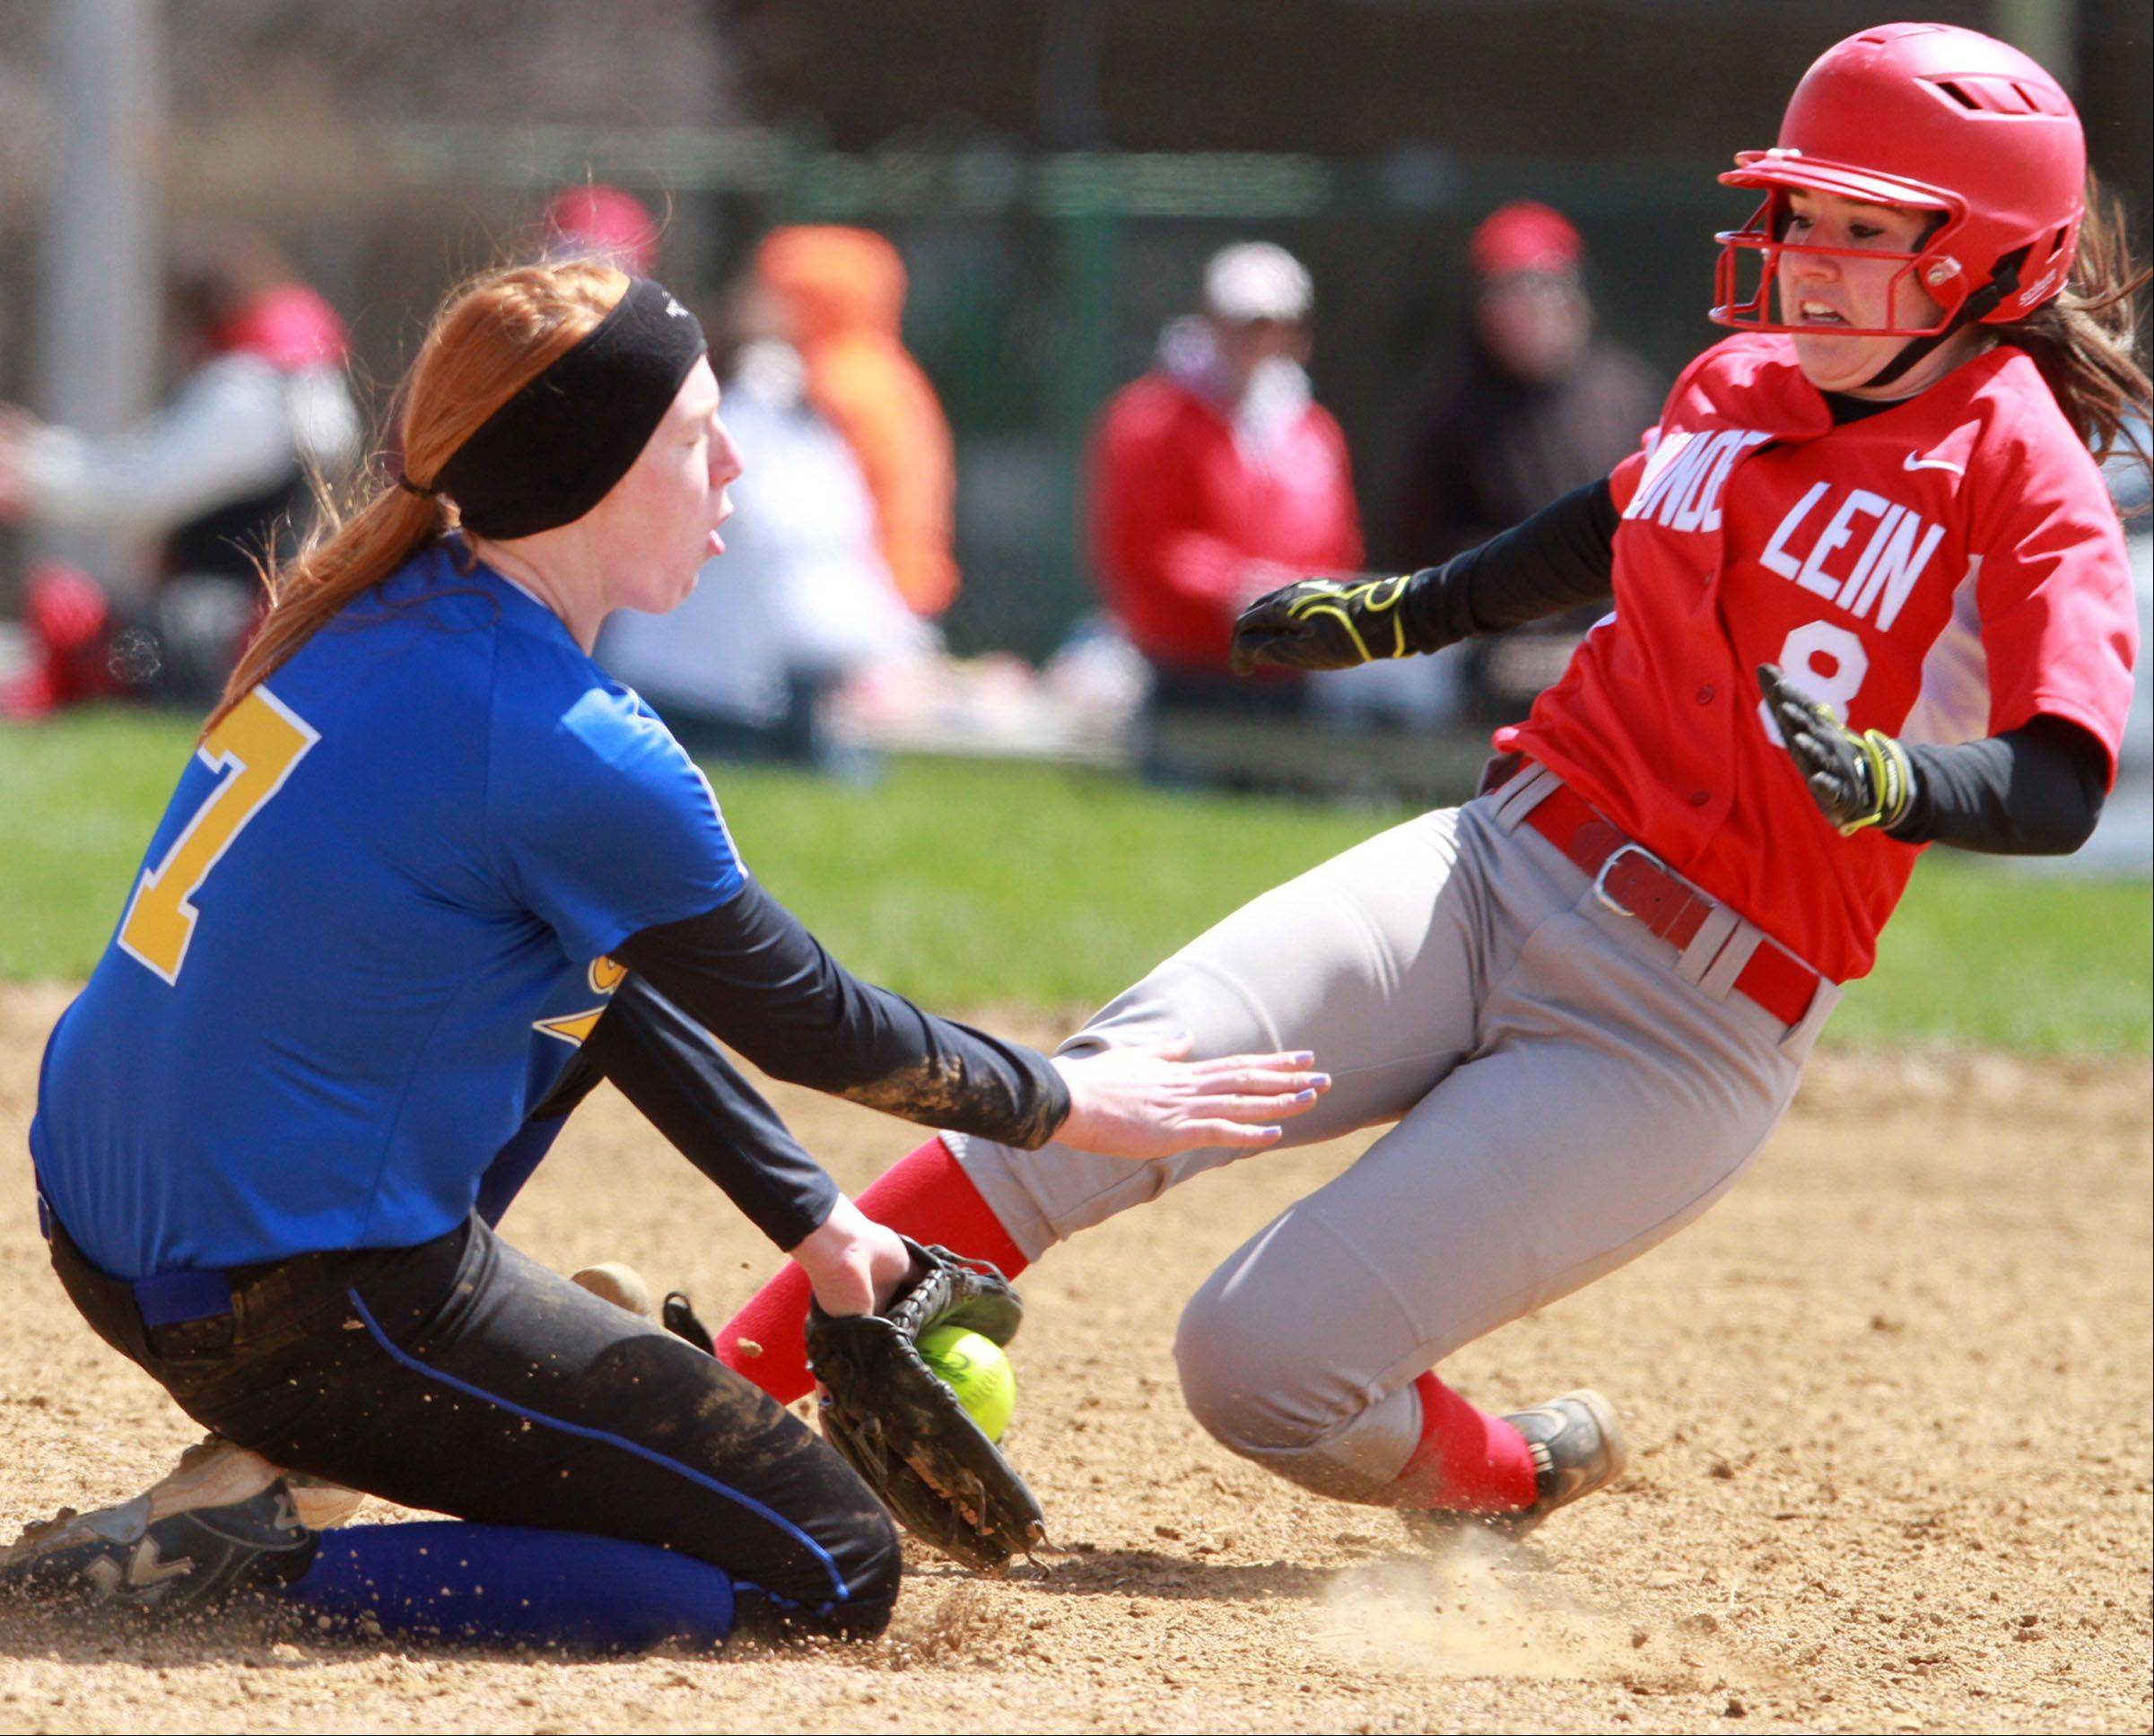 Mundelein�s Maddie Zazas slides safely into second base past Johnsburg�s Carly Wilson at Mundelein on Saturday.